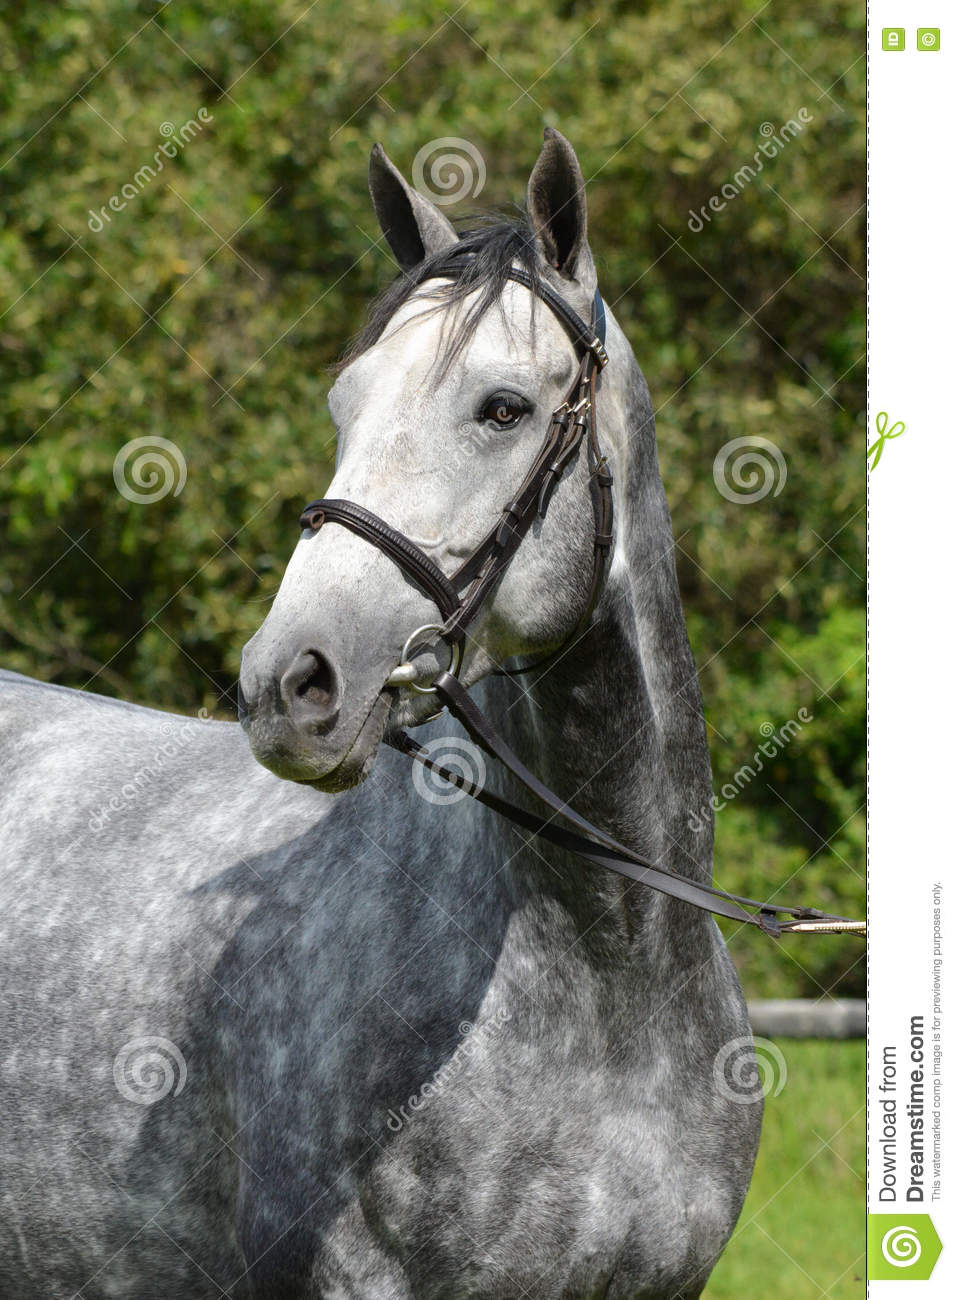 Beautiful Grey Waterproof Flooring Ideas For Living Room: Horse Portrait Stock Photo. Image Of Outdoor, Alert, Gray